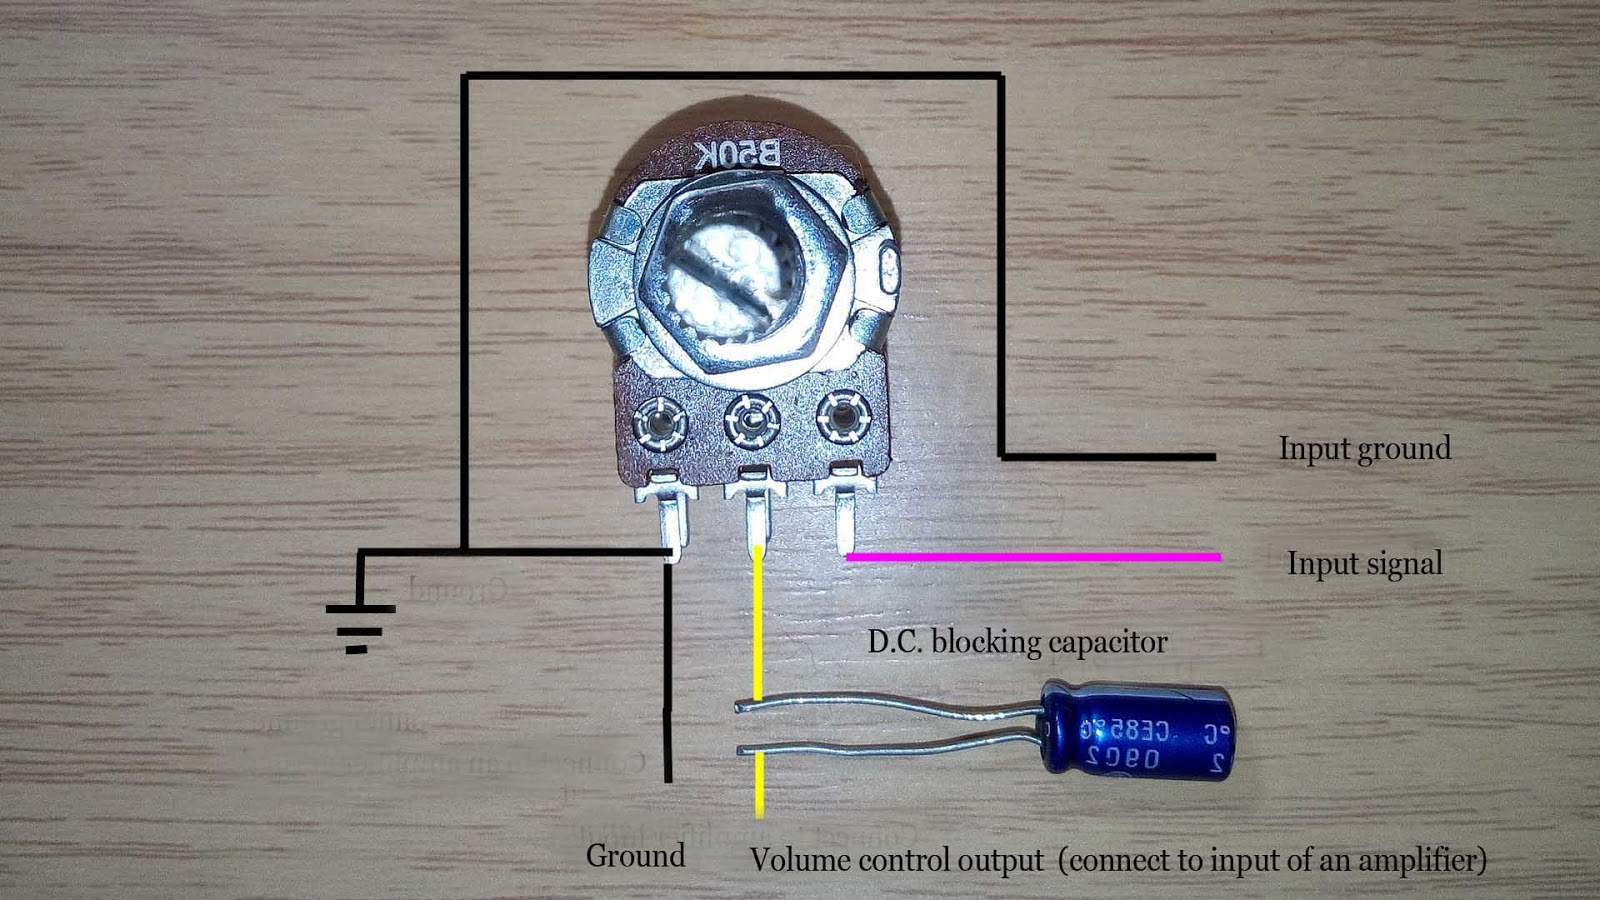 Volume Control Wiring Diagram Schematics Exterior Code Free Download Diagrams Pictures How To Connect An Amplifier Midi Pinout